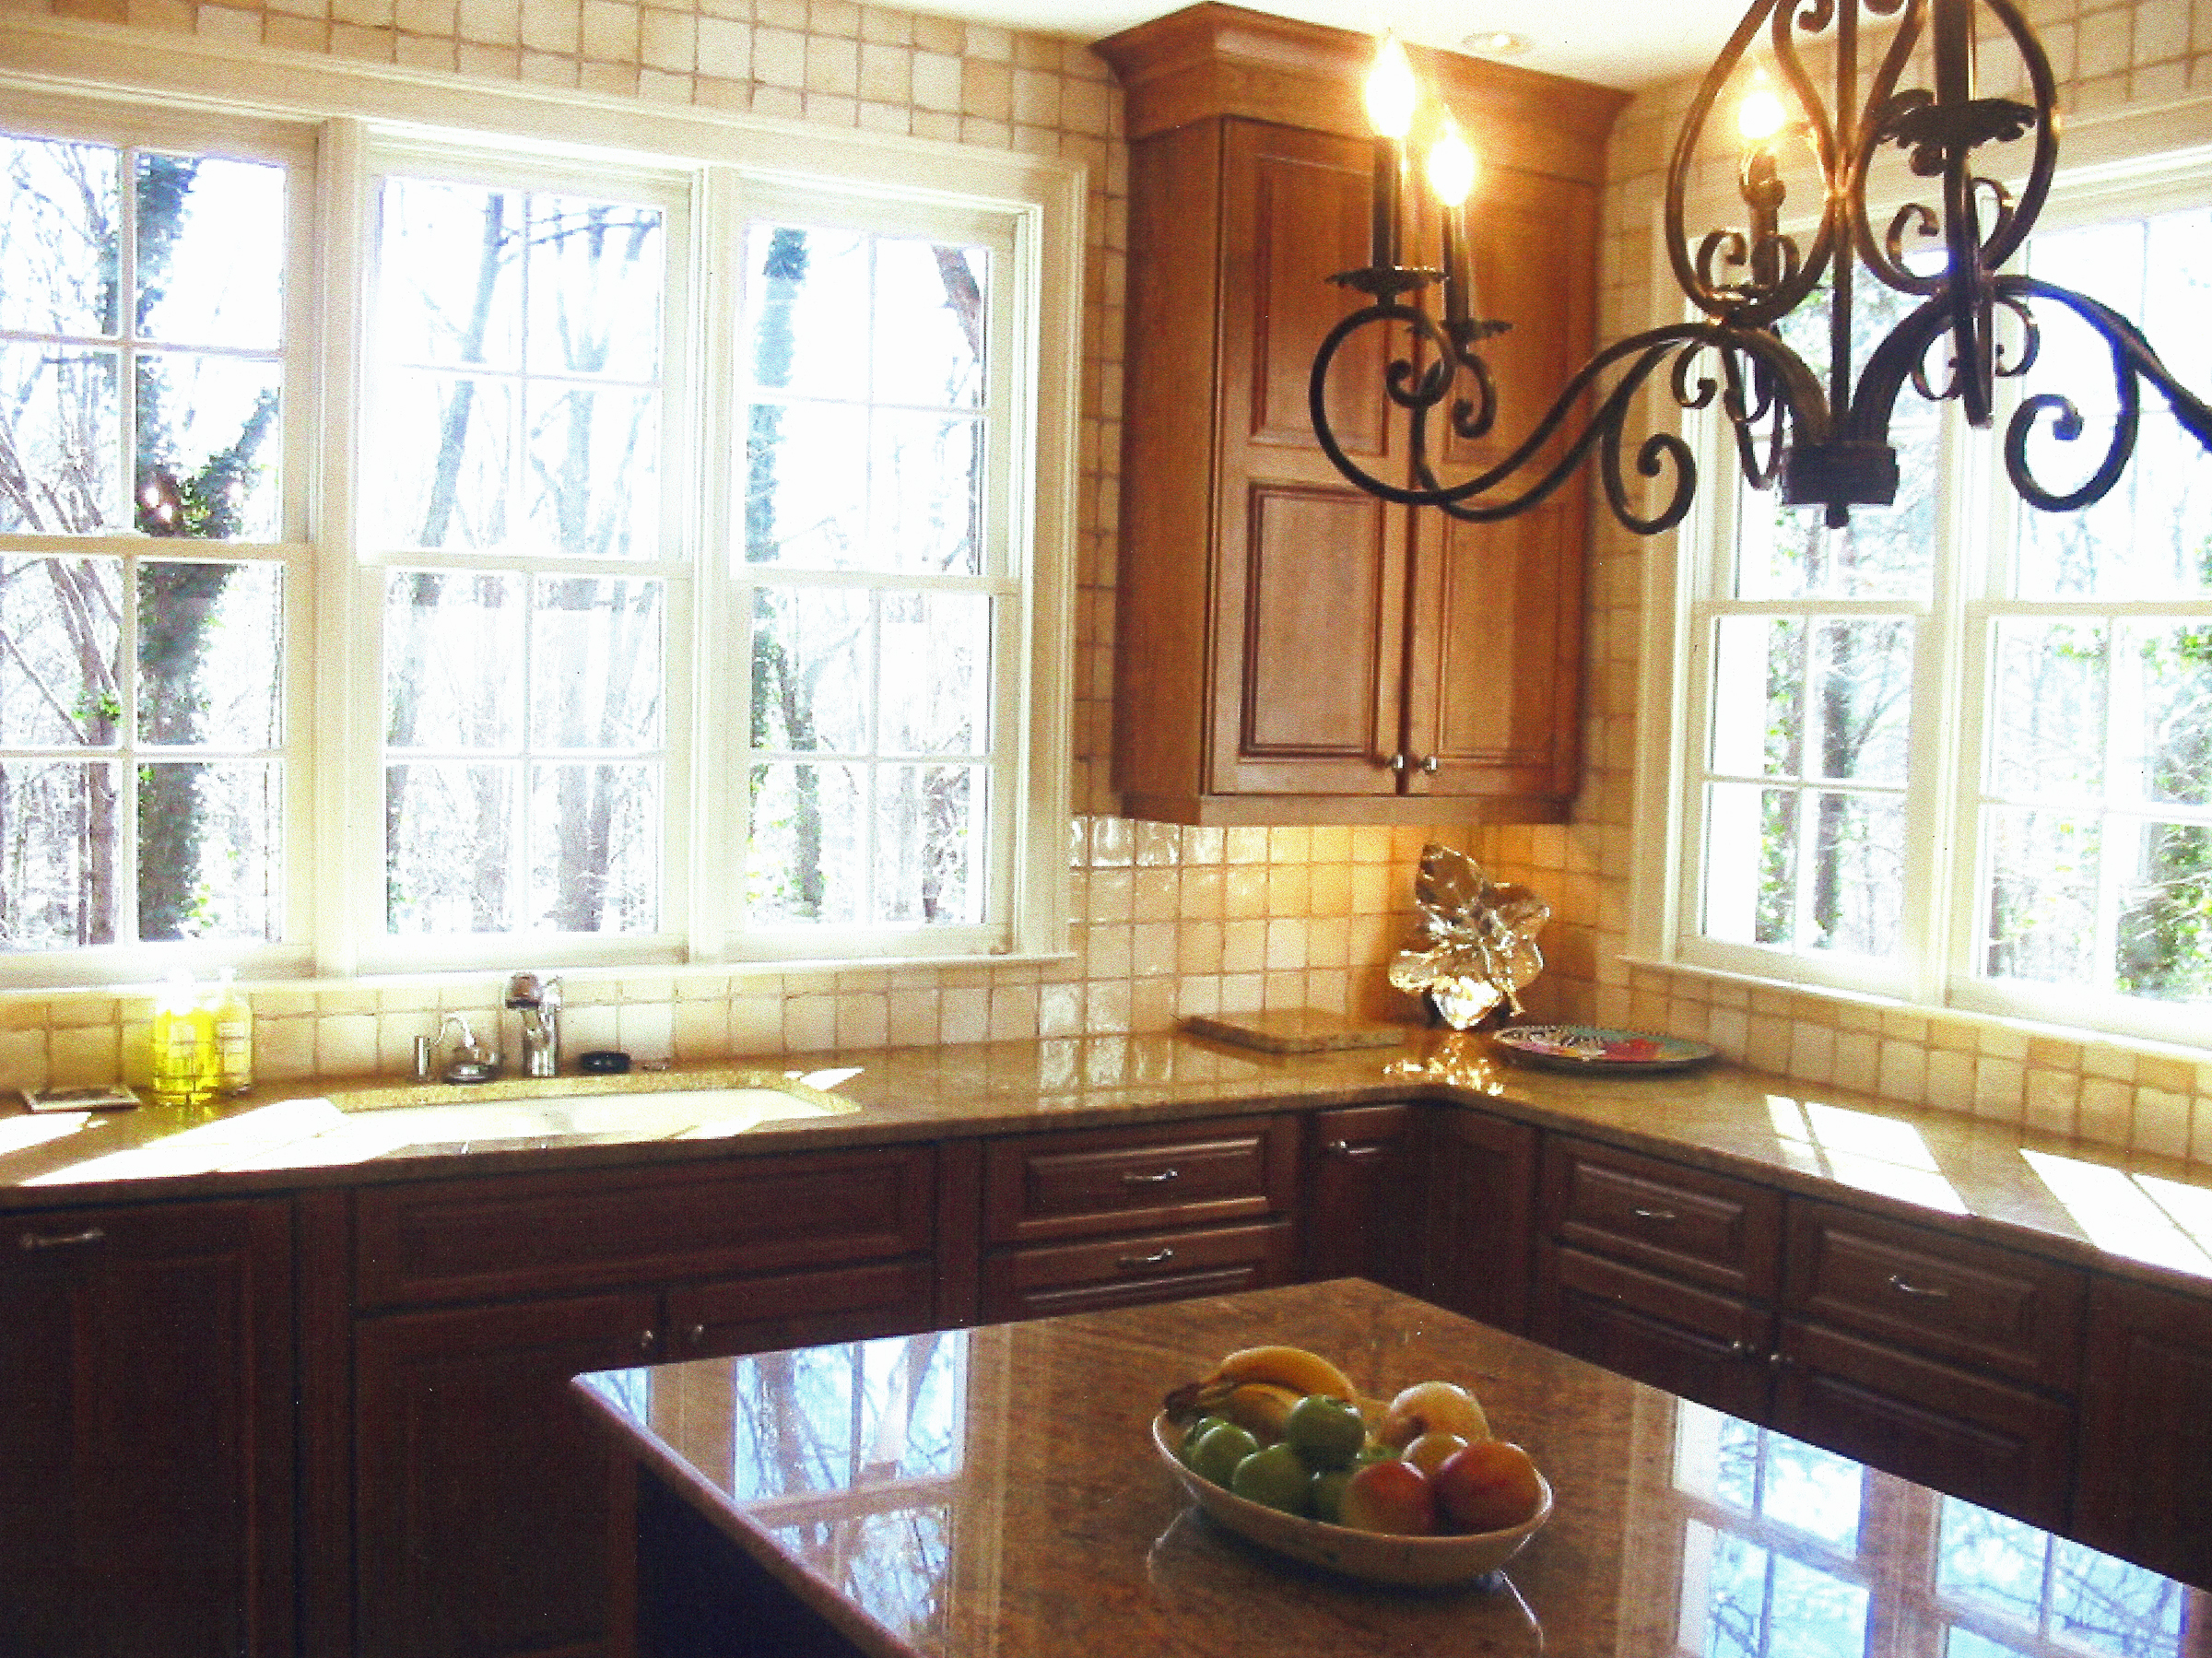 Mt-Paran-Kitchen-Island-Buckhead-Paces-Construction-Atlanta